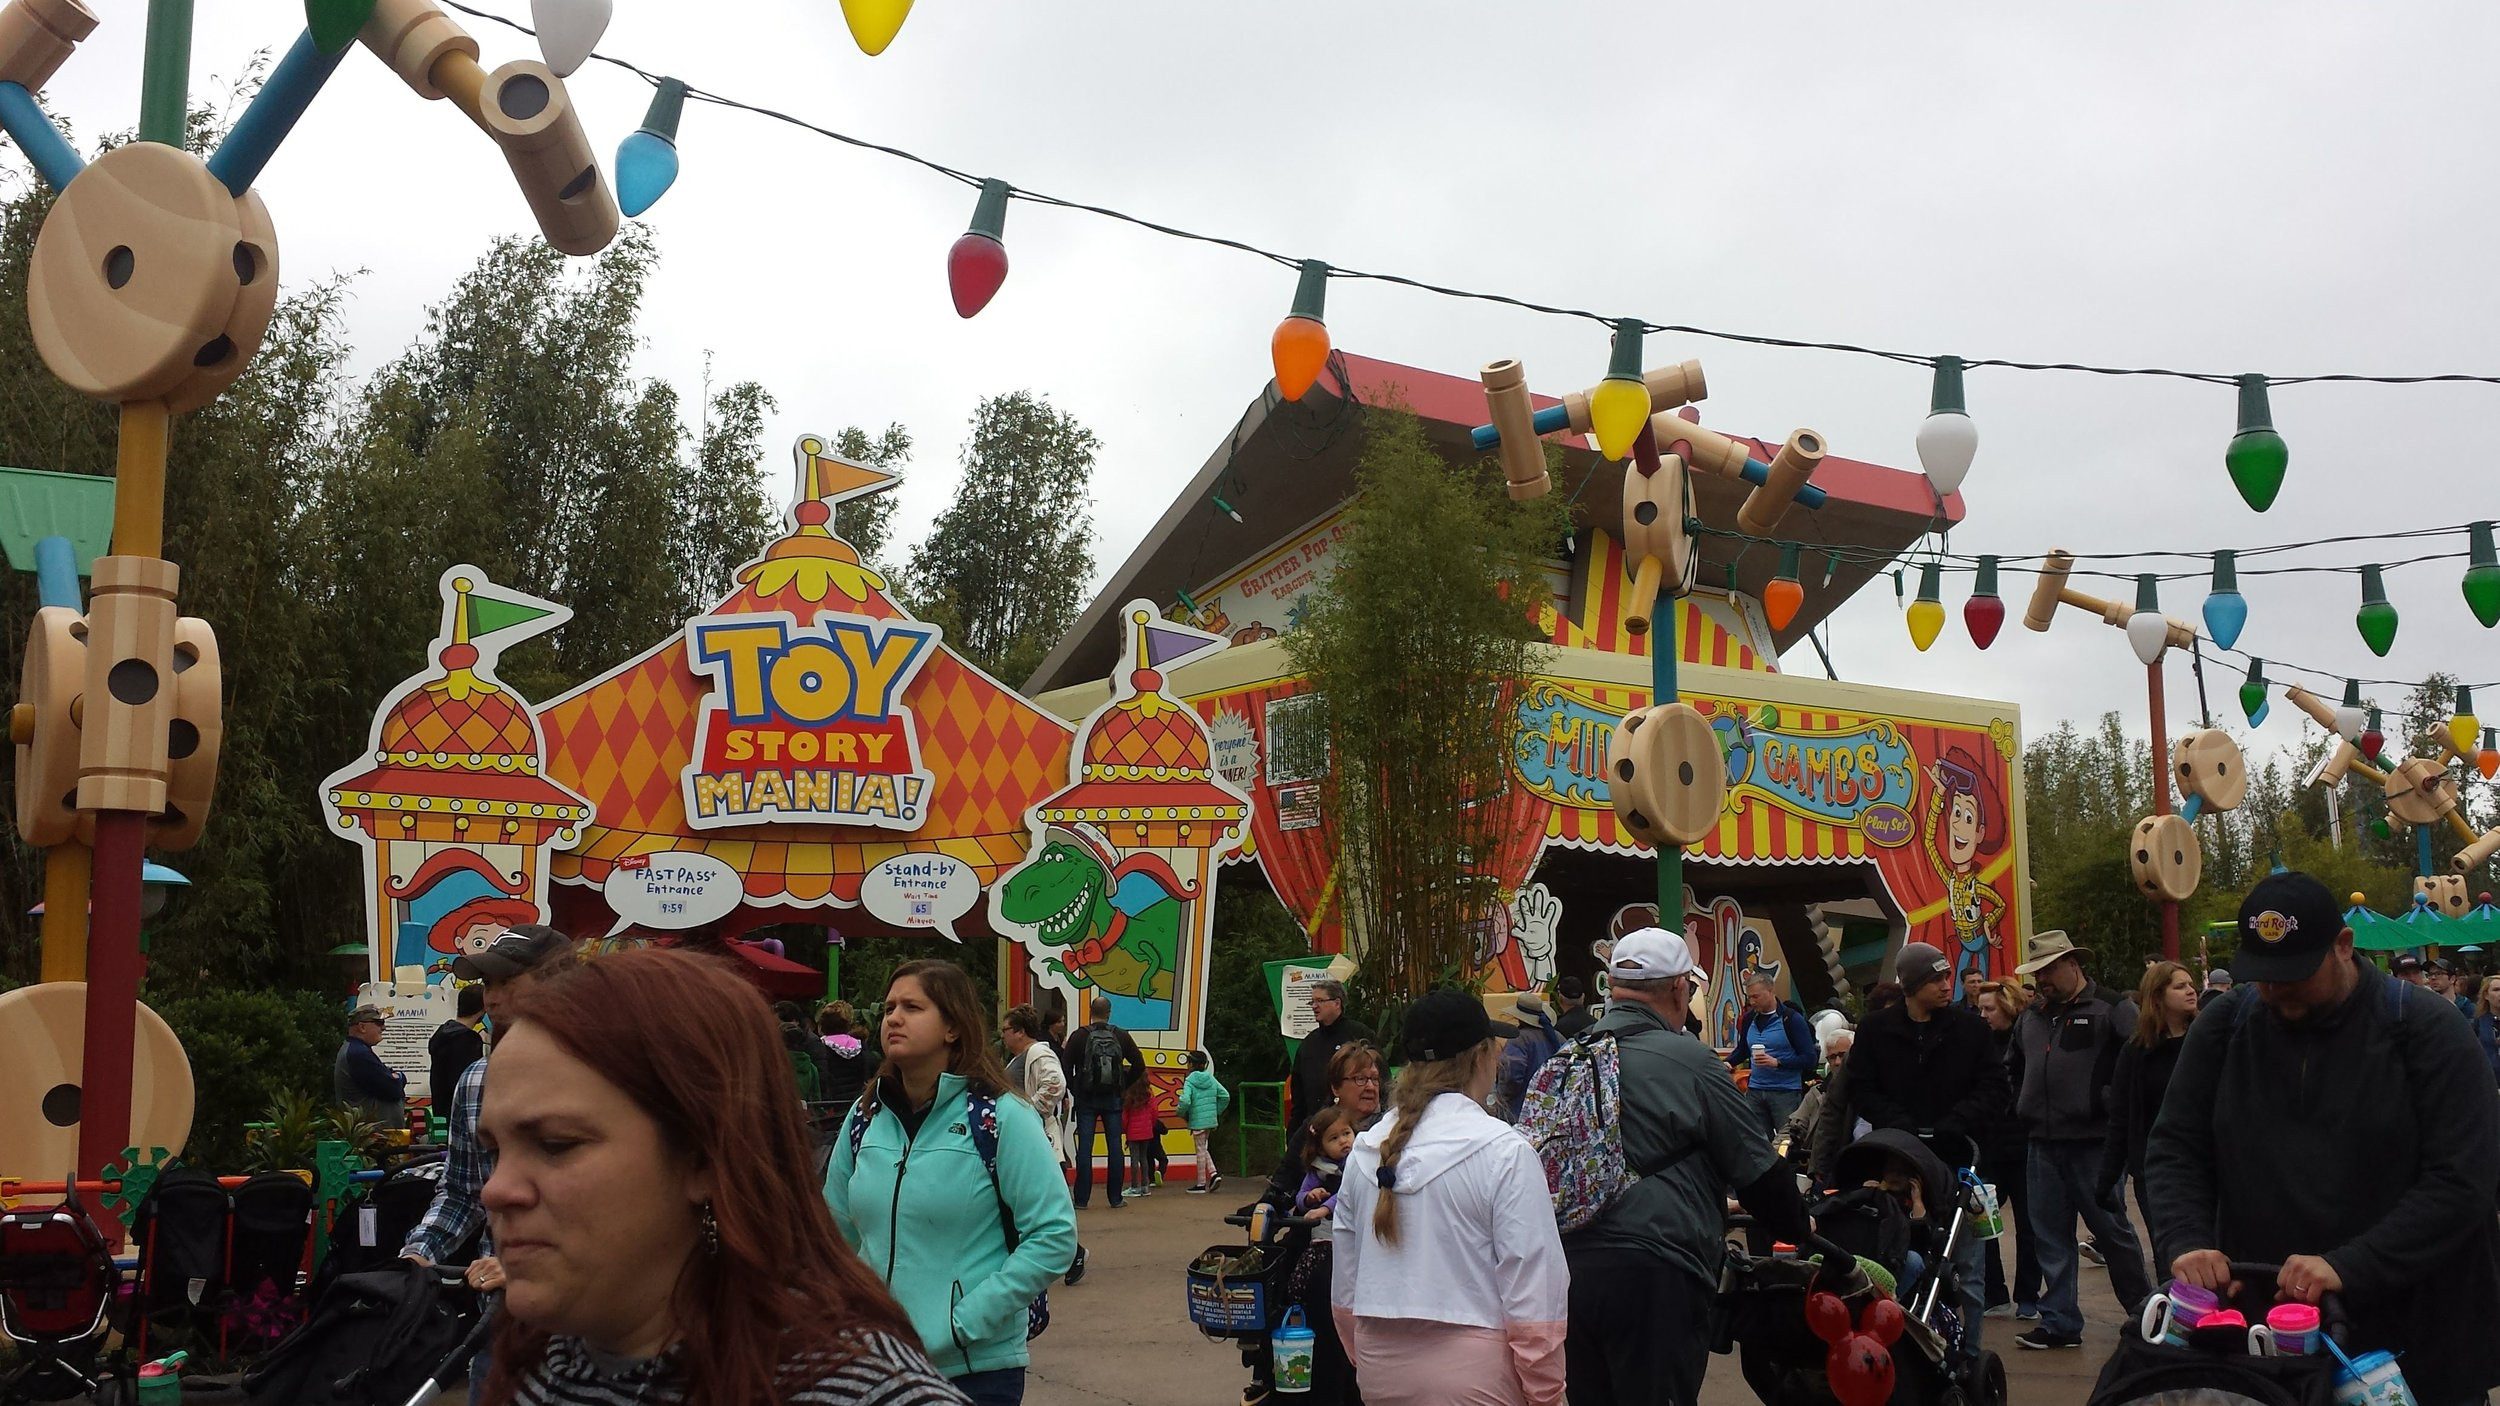 Toy story land in Disney's Hollywood studios in walt disney world on a cloudy day.